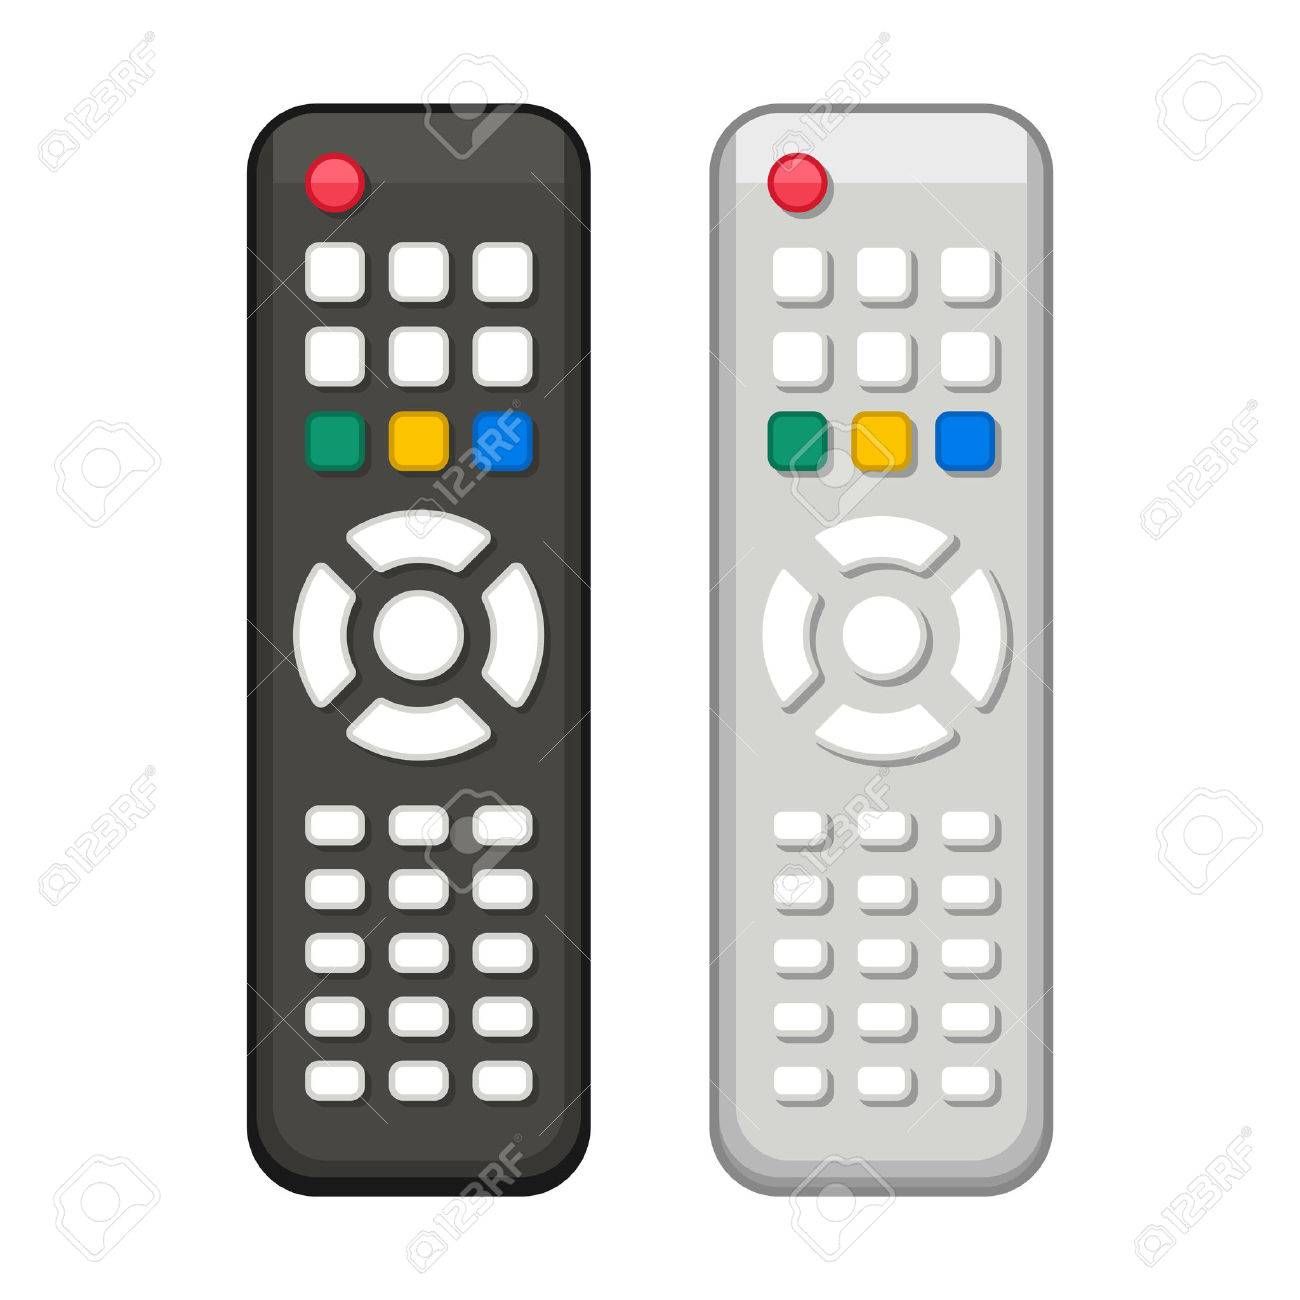 Tv Remote Control Clipart All About Kedsumr Wireless 1 Way On Off Digital Switch 110v For In Black And White Design Vector Royalty Free